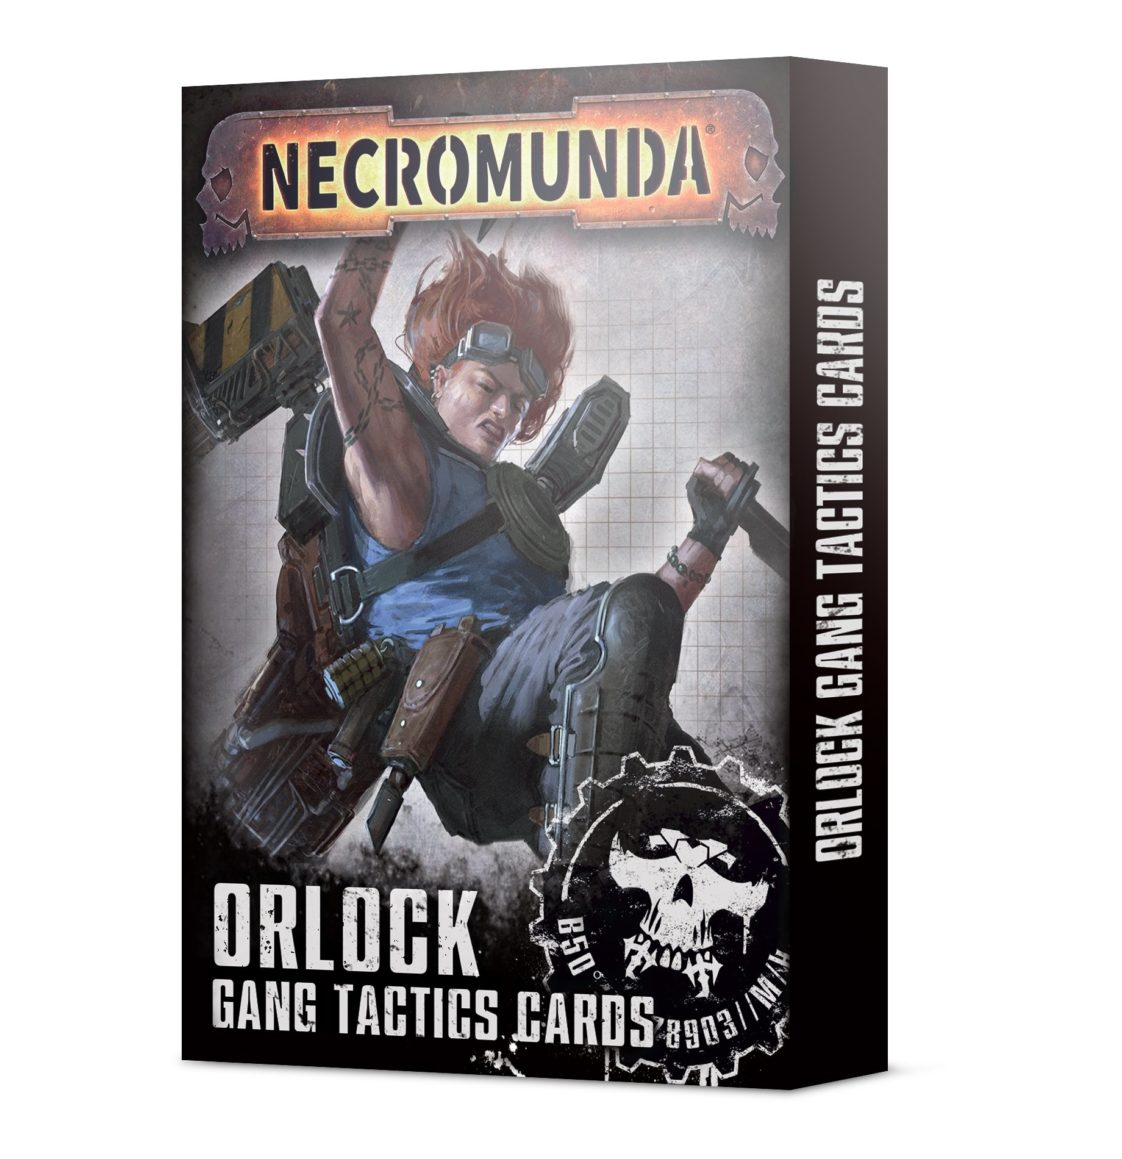 Necromunda: Orlock Gang Tactics Cards